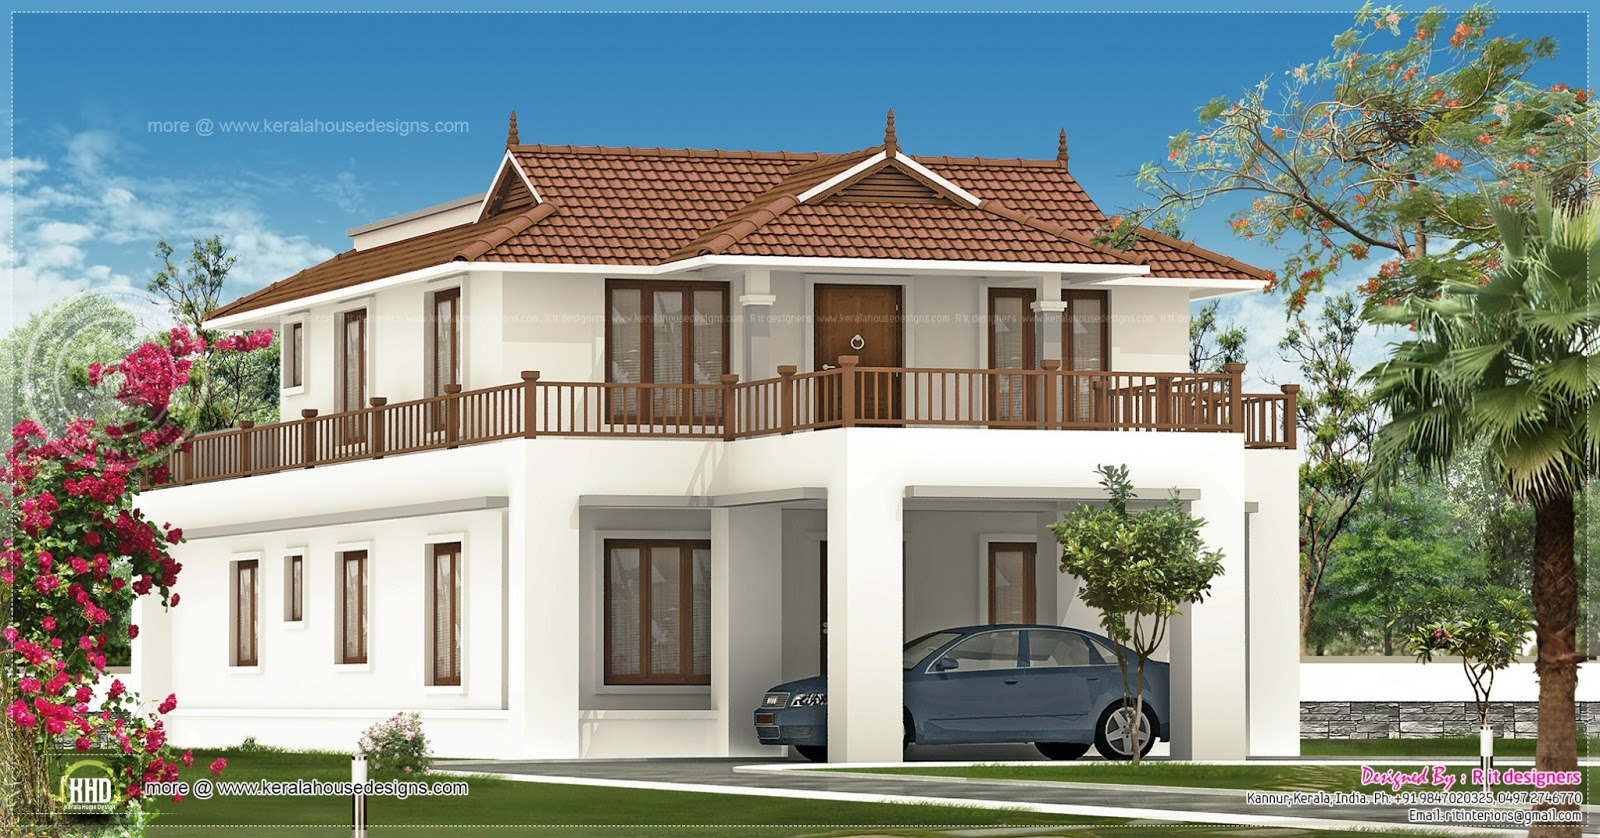 2820 square feet house exterior design kerala home design and floor plans